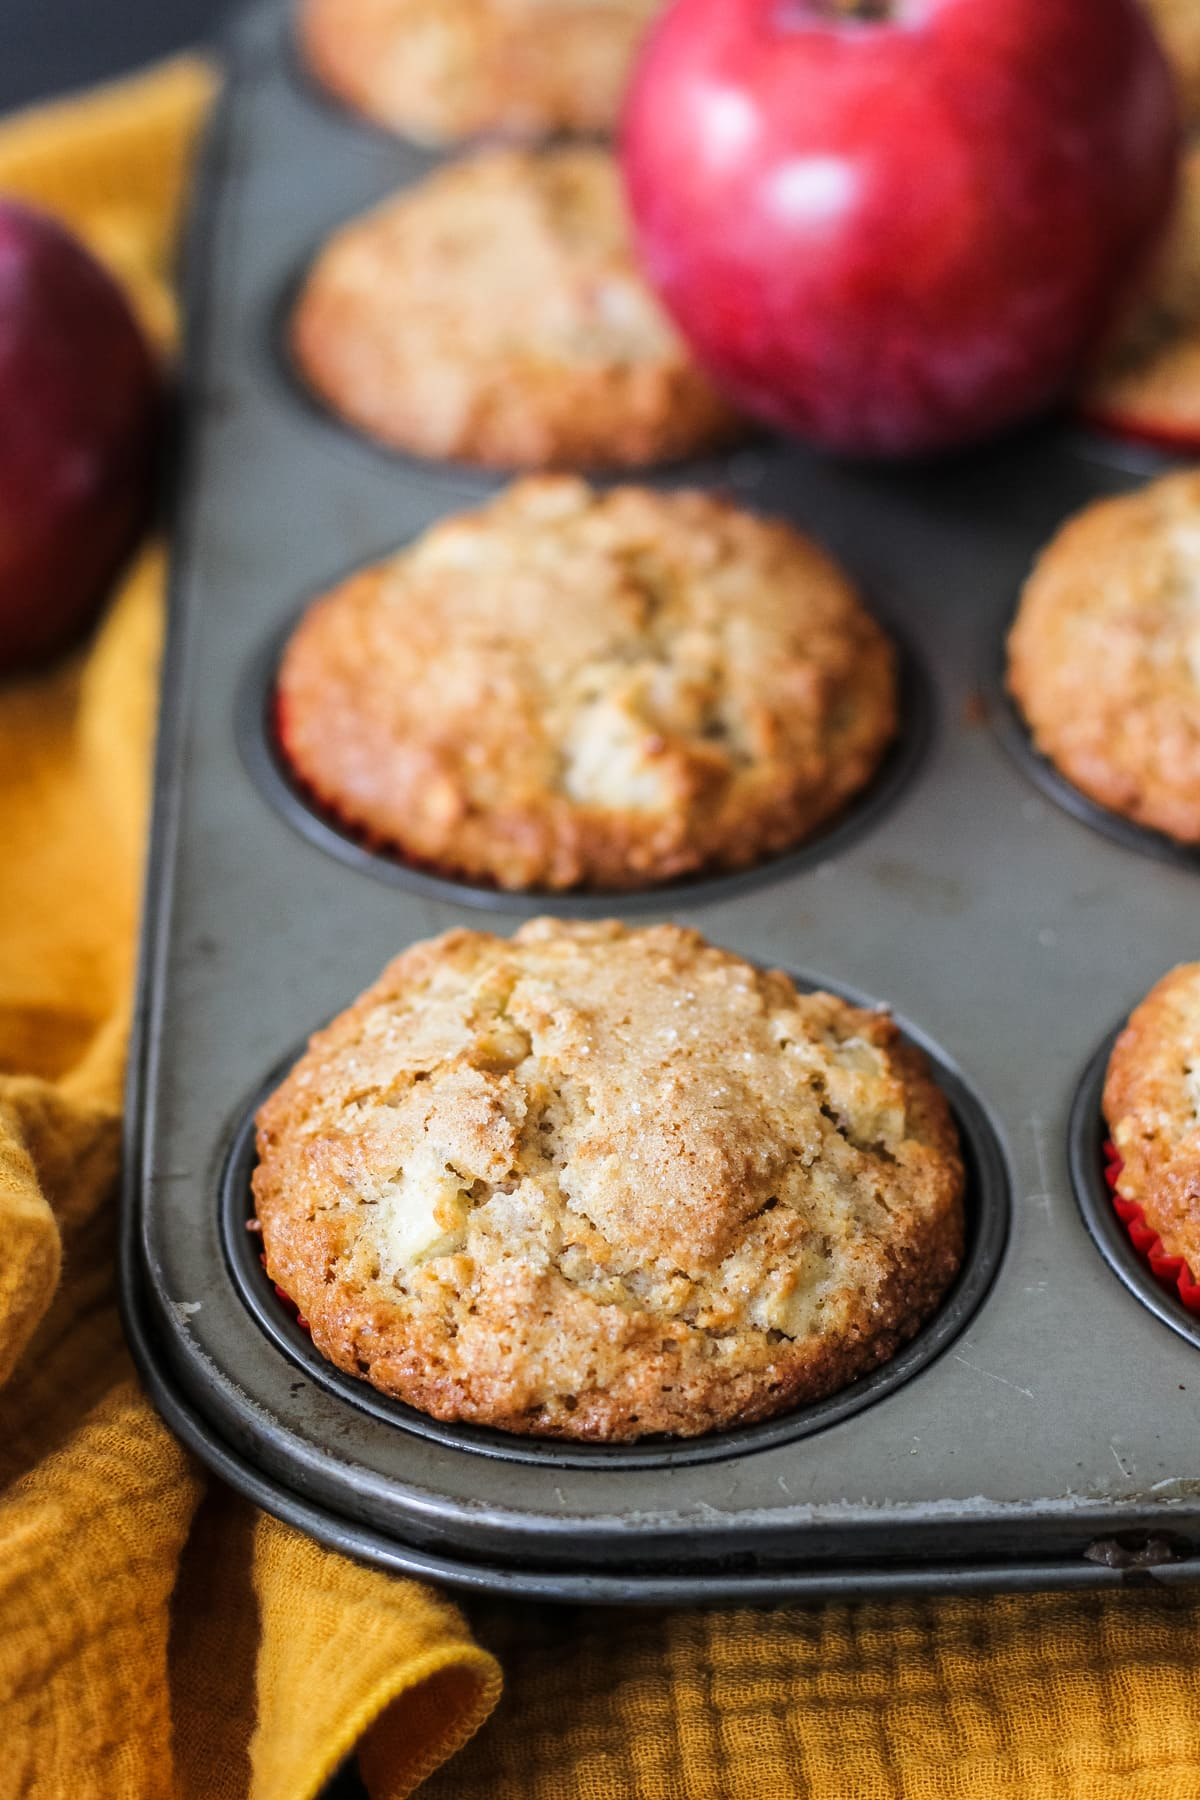 a close up of a maple apple muffin in a muffin tin. in the background is a red apple